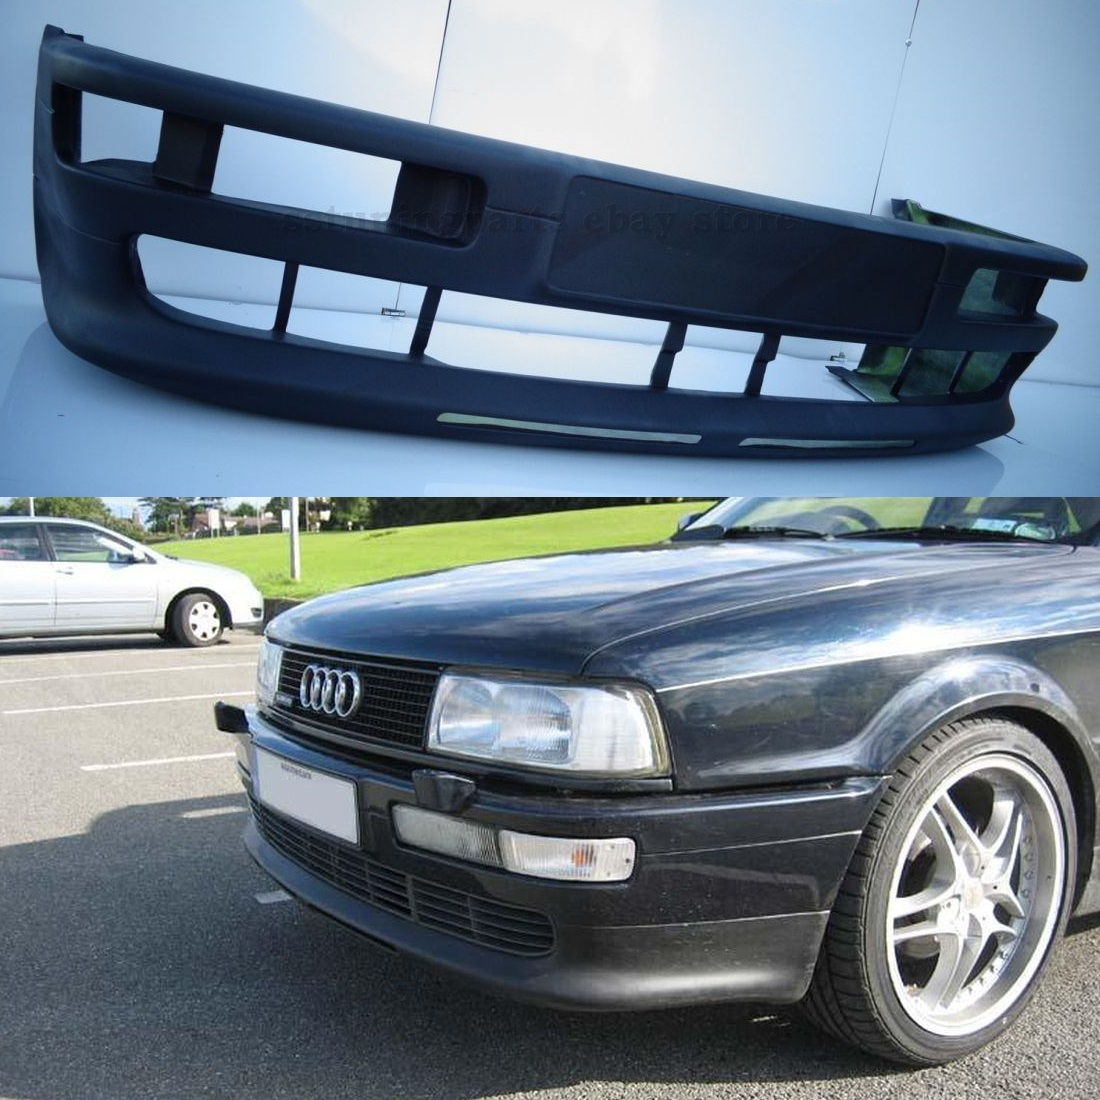 audi 80 b4 coupe front s2 style bumper spoiler. Black Bedroom Furniture Sets. Home Design Ideas